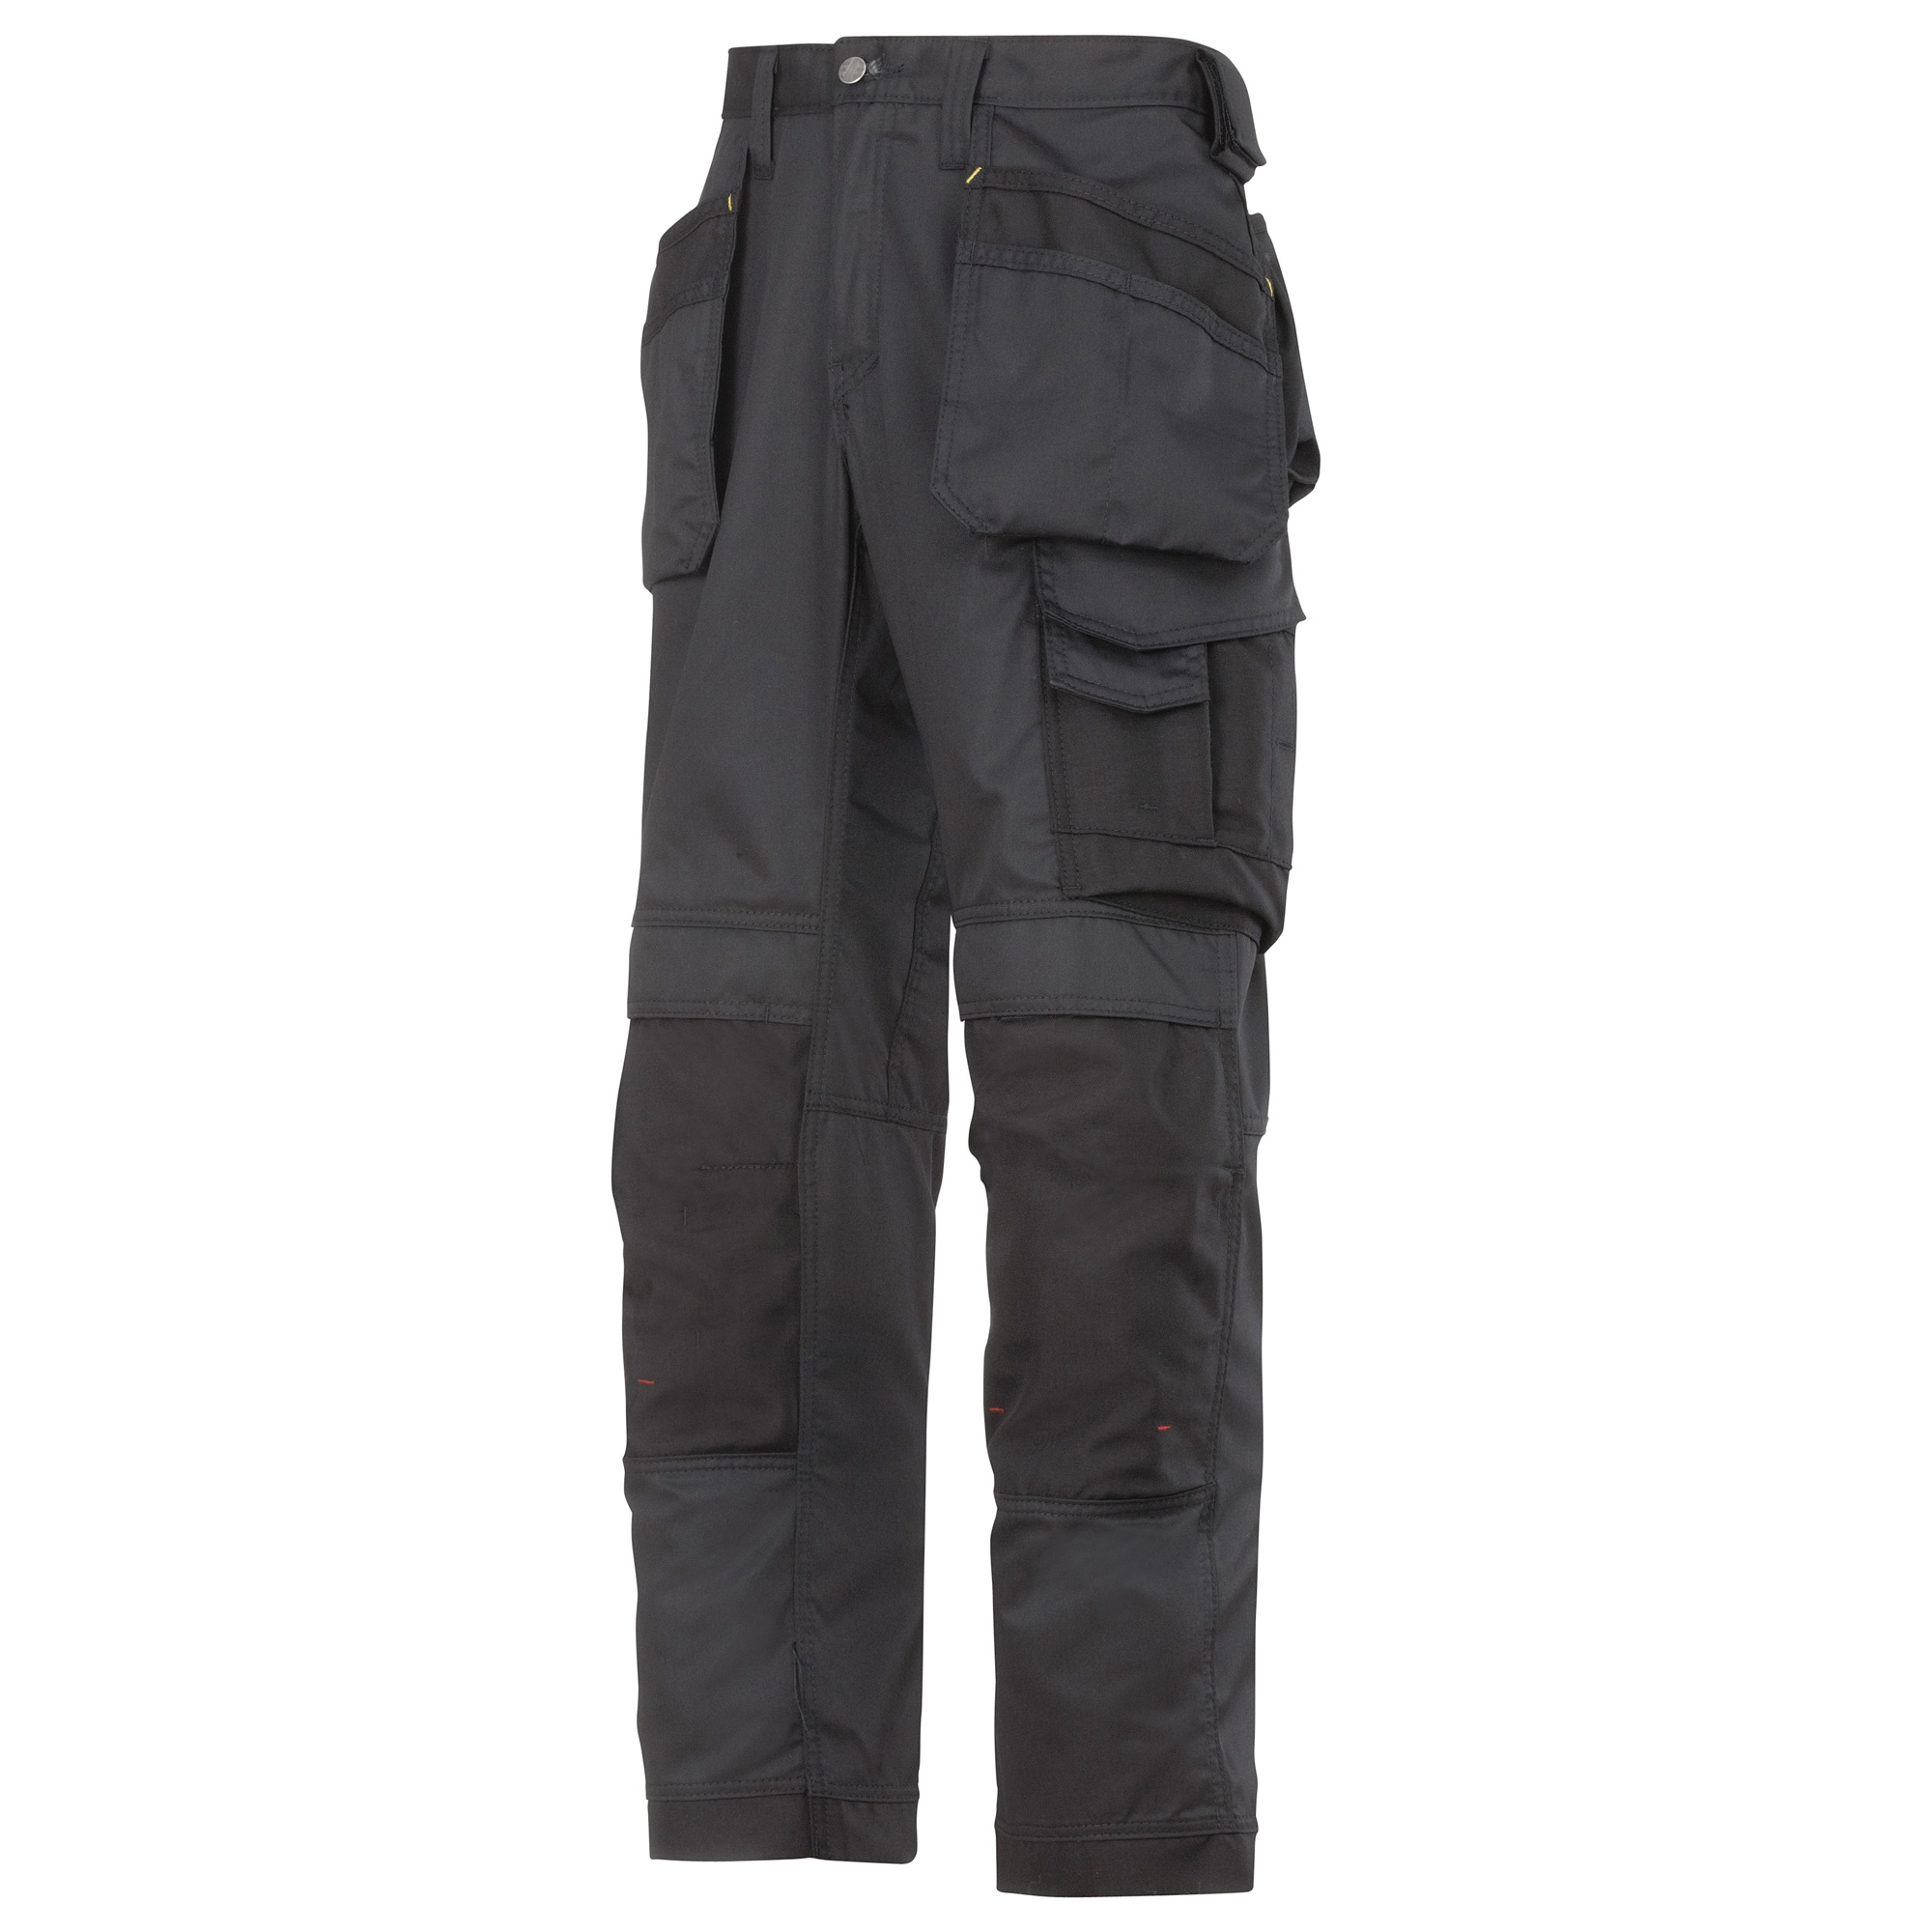 Snickers Mens Cooltwill Workwear Trousers / Pants (35R) (Black)